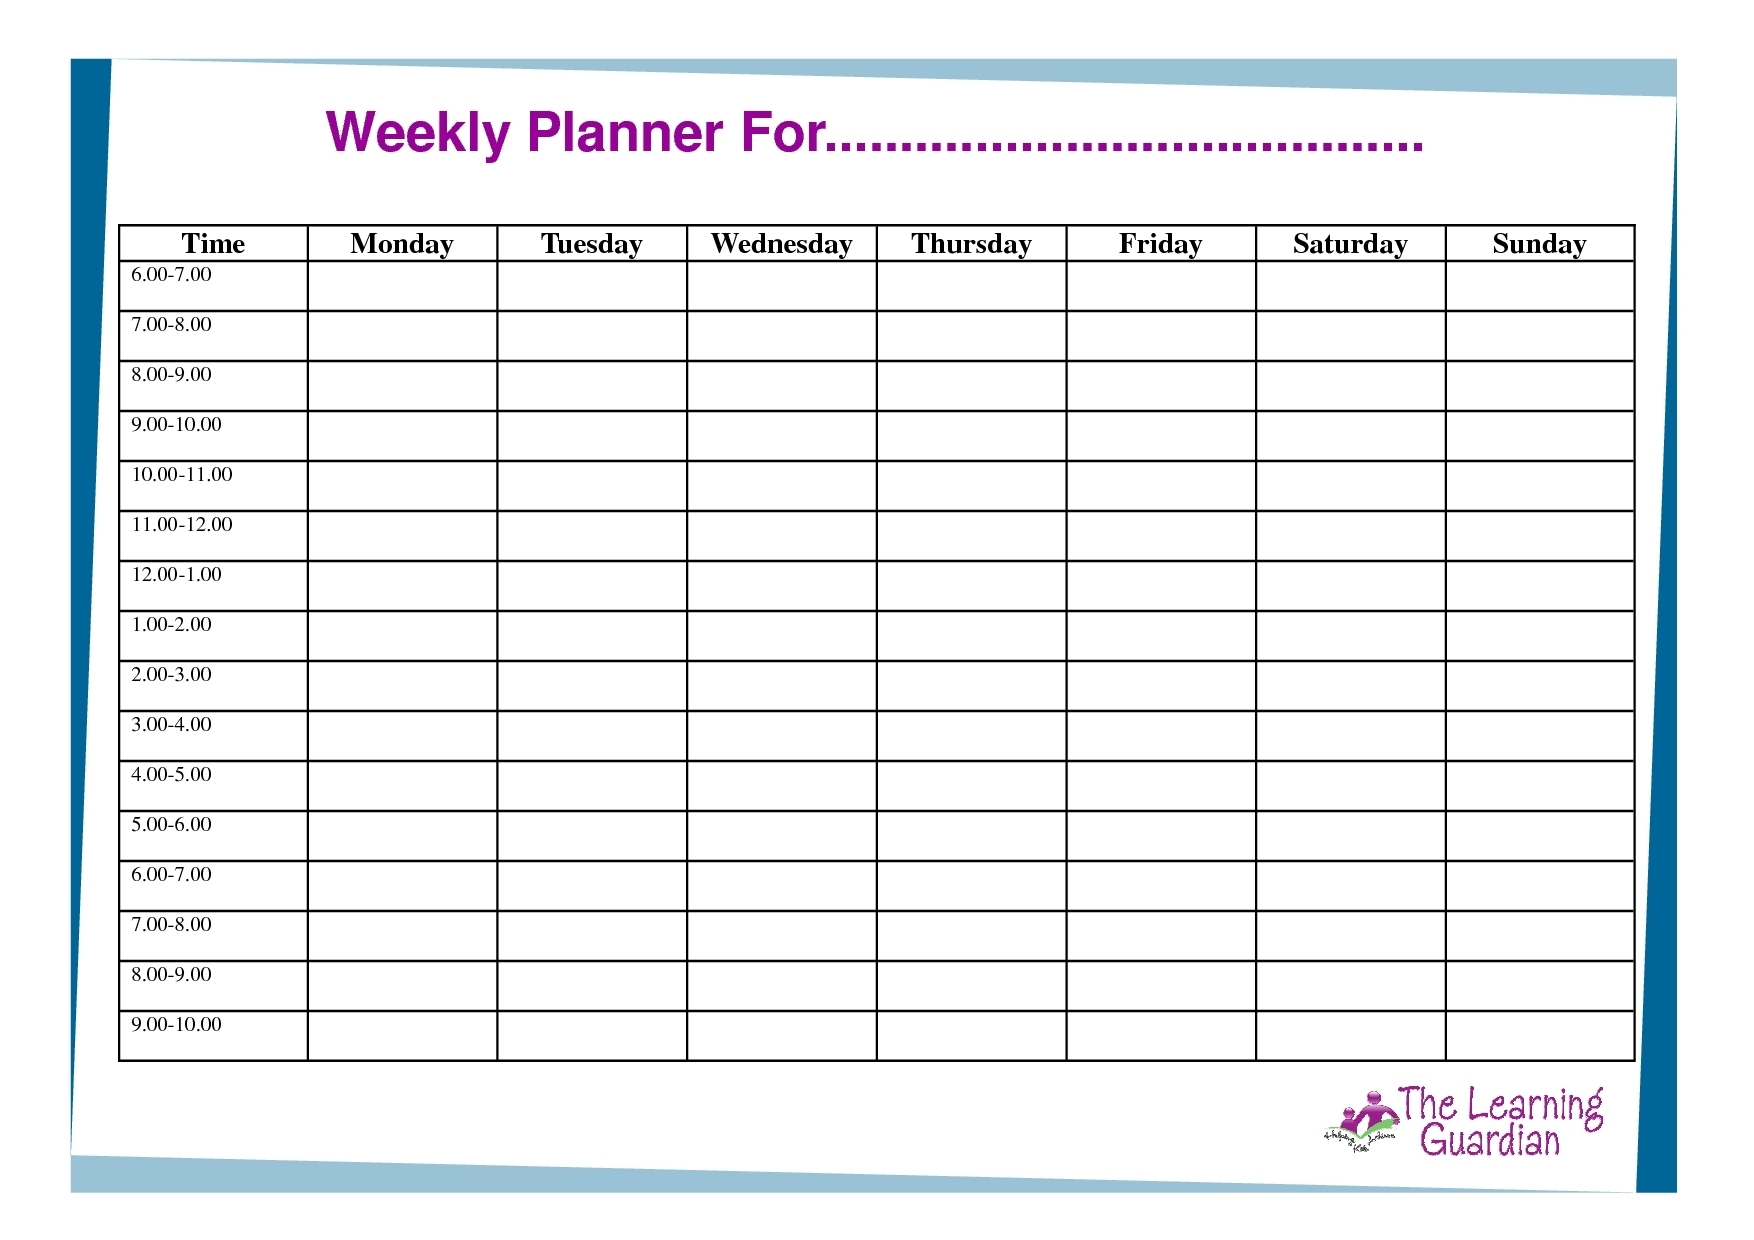 employee monday to sunday schedule : free calendar template